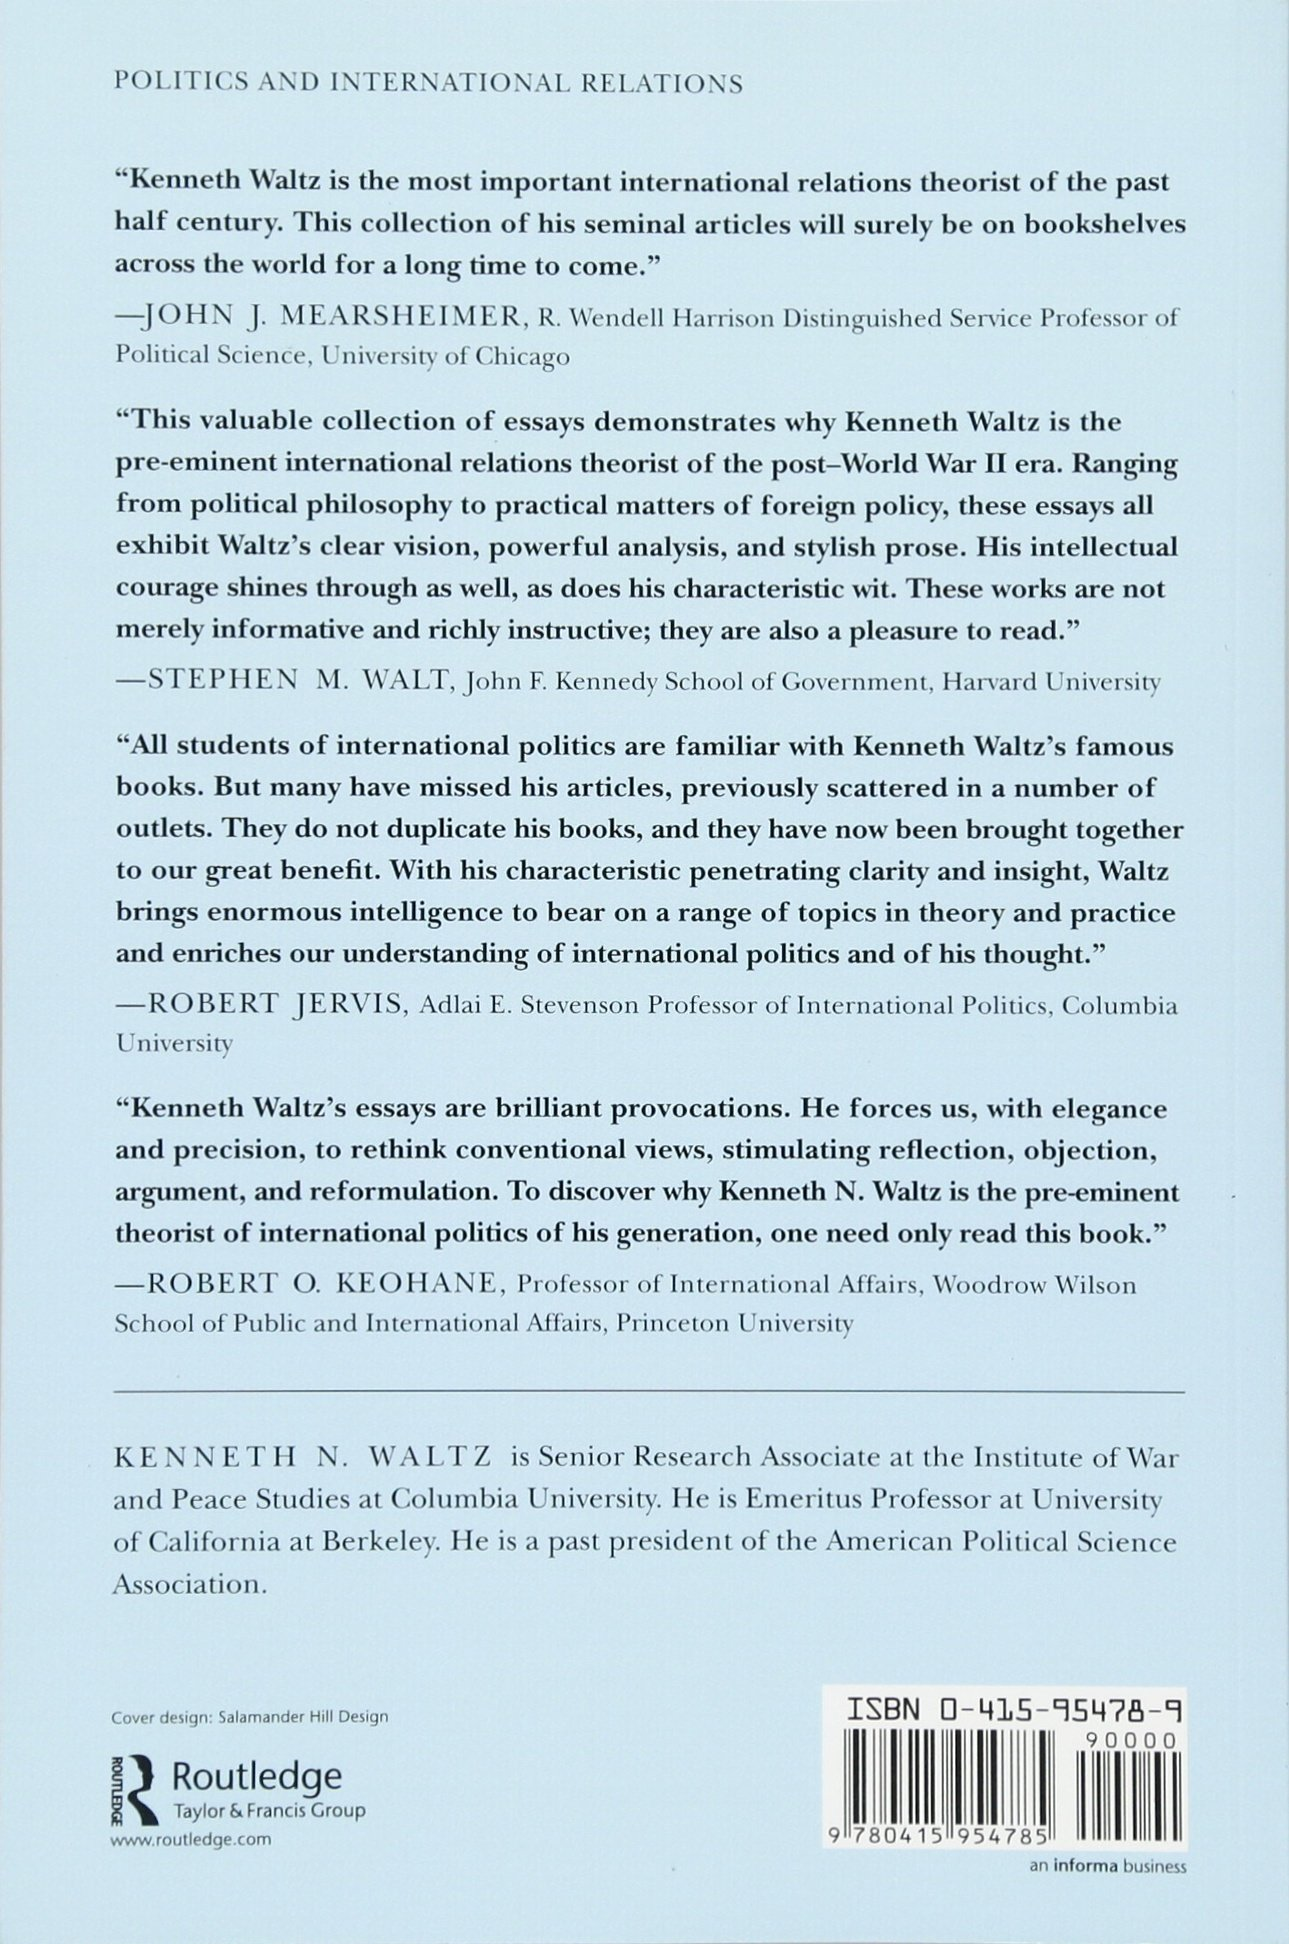 realism and international politics the essays of ken waltz  realism and international politics the essays of ken waltz amazon co uk kenneth n waltz 9780415954785 books